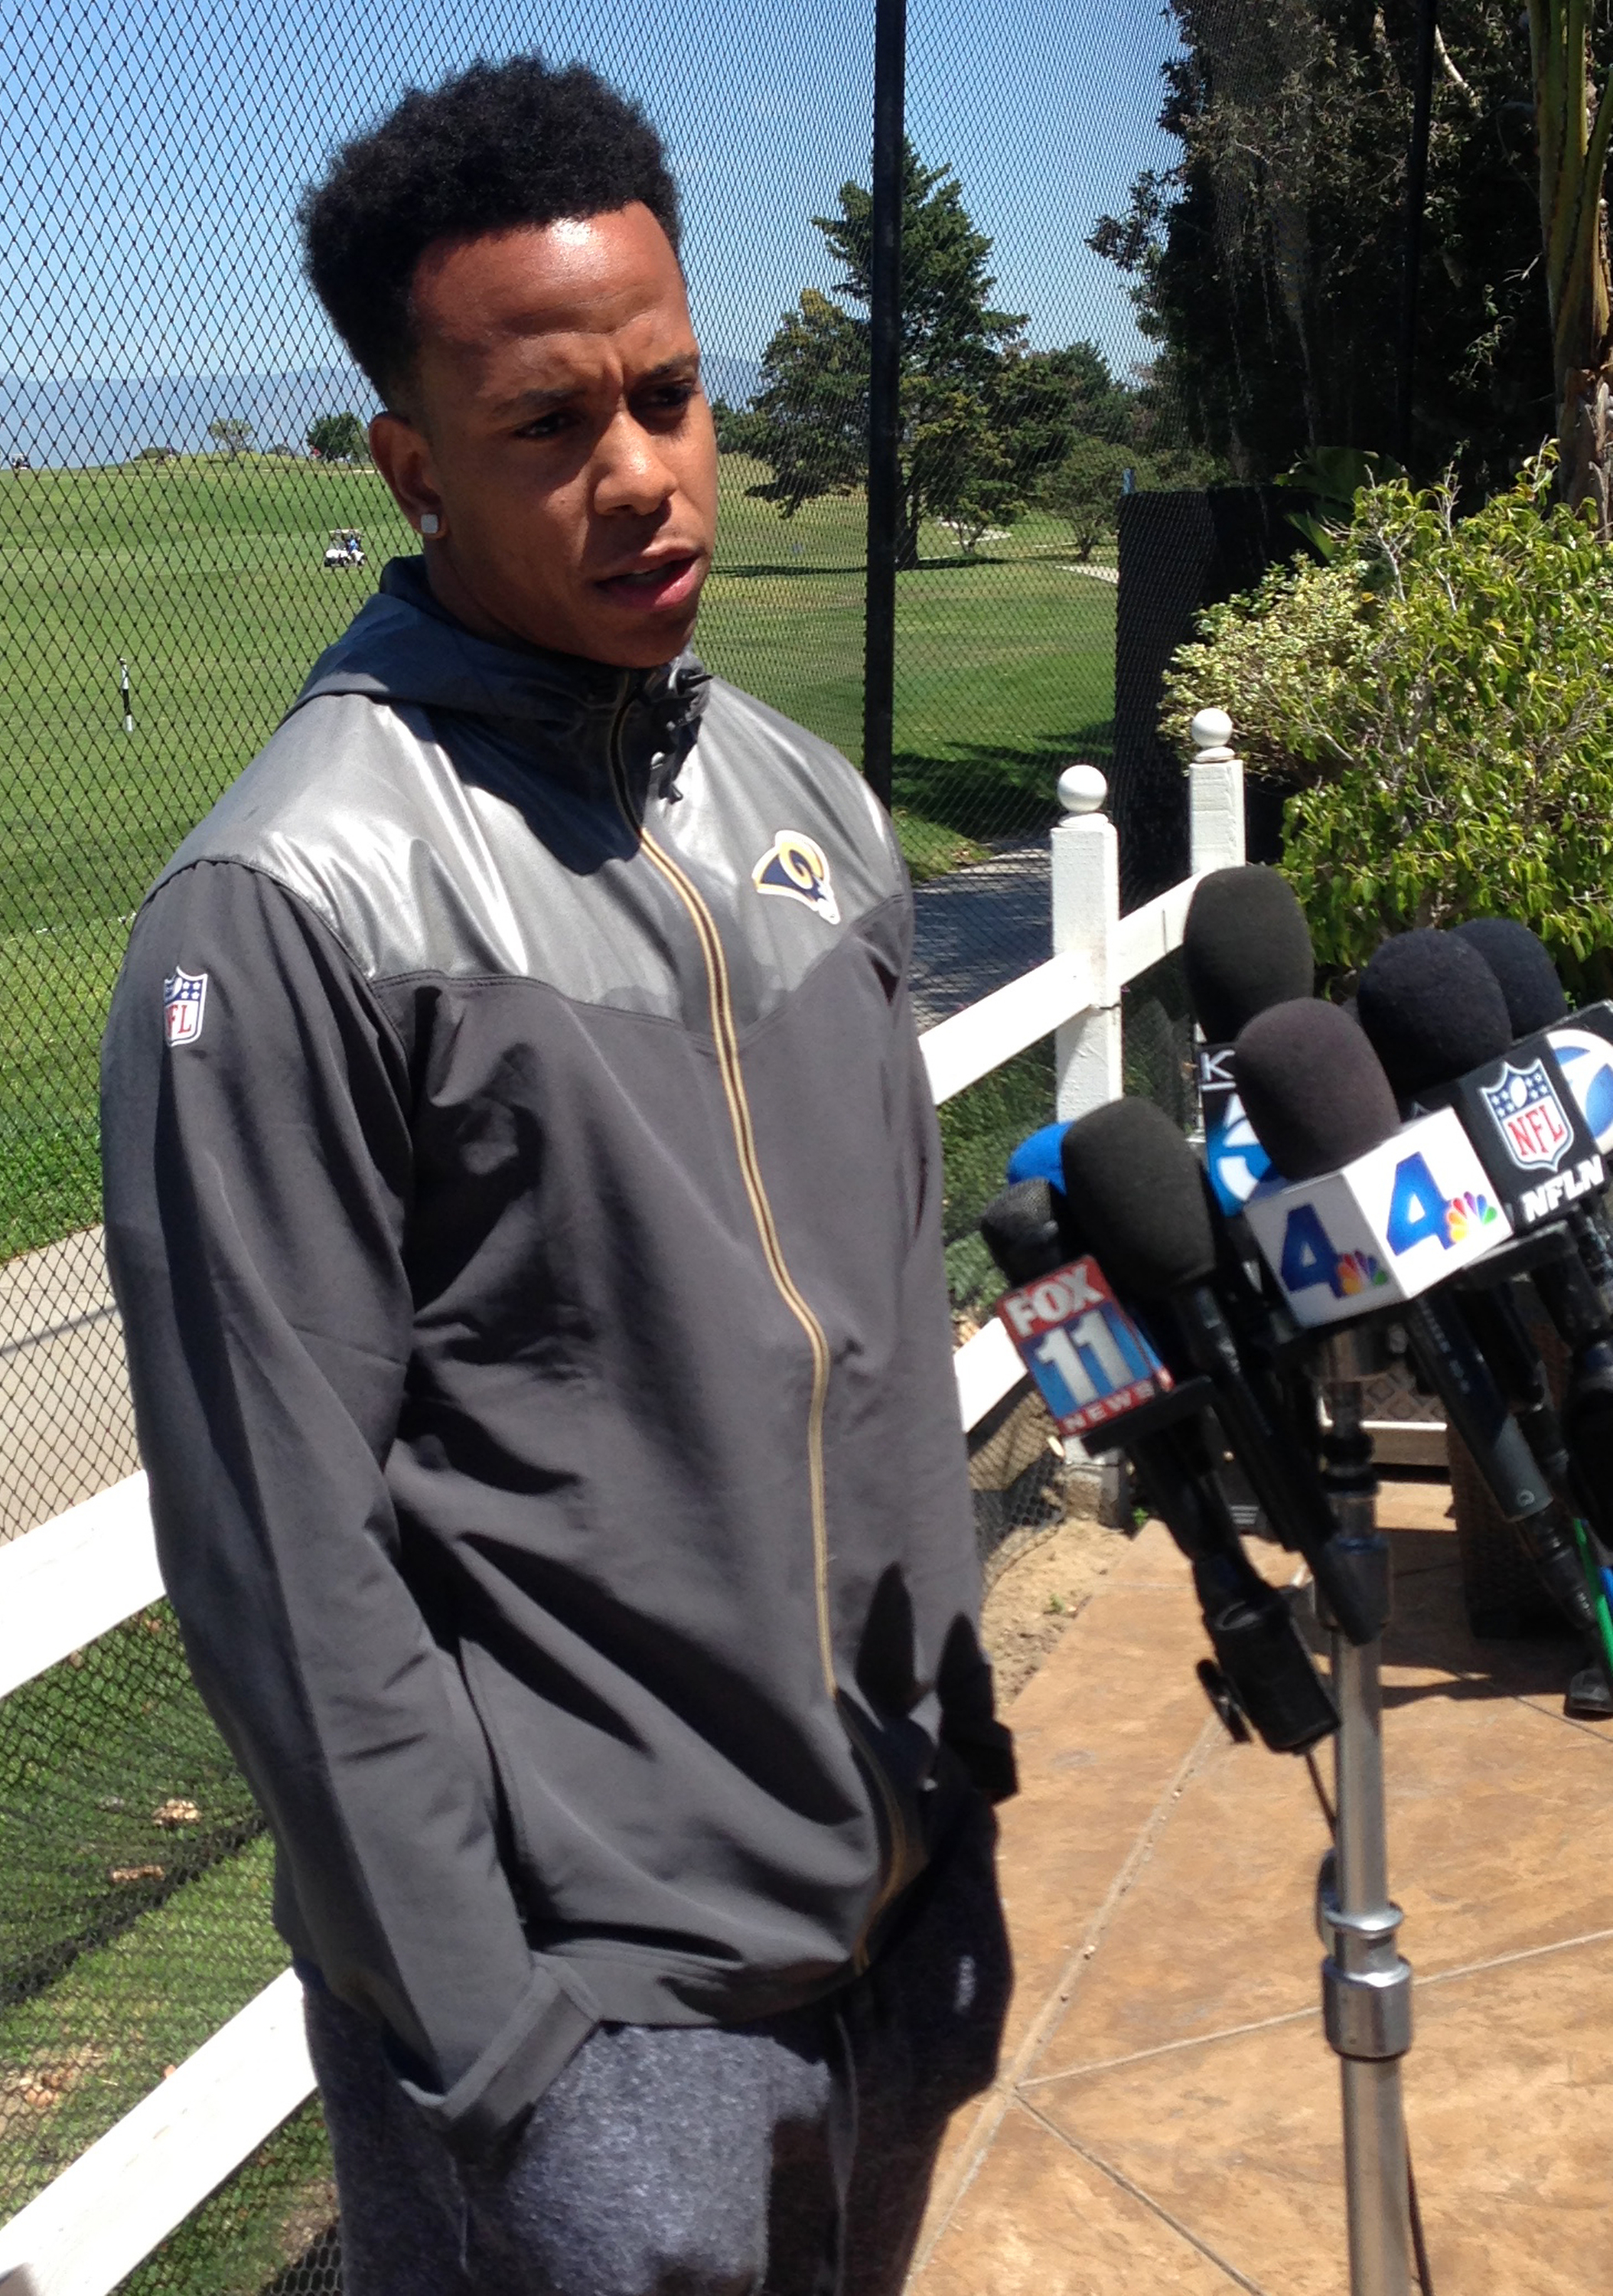 The Los Angeles Rams cornerback Trumaine Johnson talks to reporters at the Rams facility in Oxnard, Calif., Monday, April 18, 2016. The Rams are settling into their new city, and any trepidation about their franchise's move is quickly losing out to excite